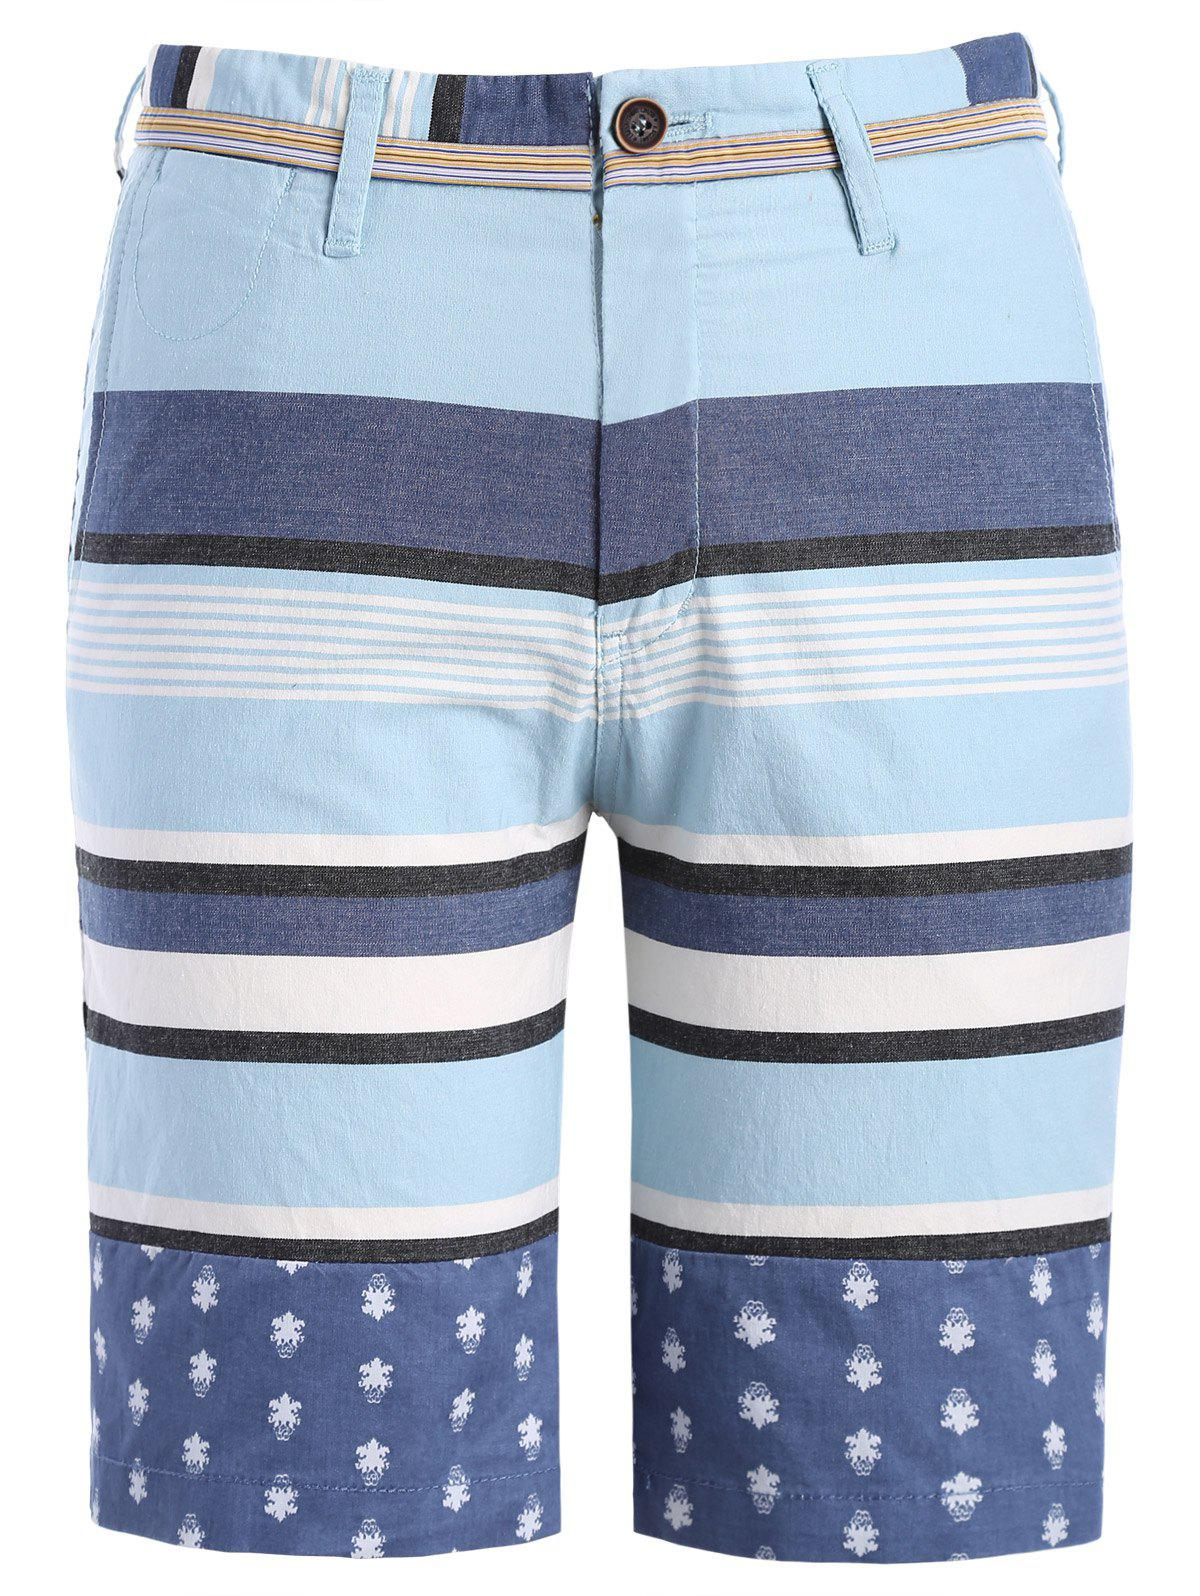 Classic Color Block Stripes Pattern Men's Straight Leg Zipper Fly Shorts - XL LIGHT BLUE